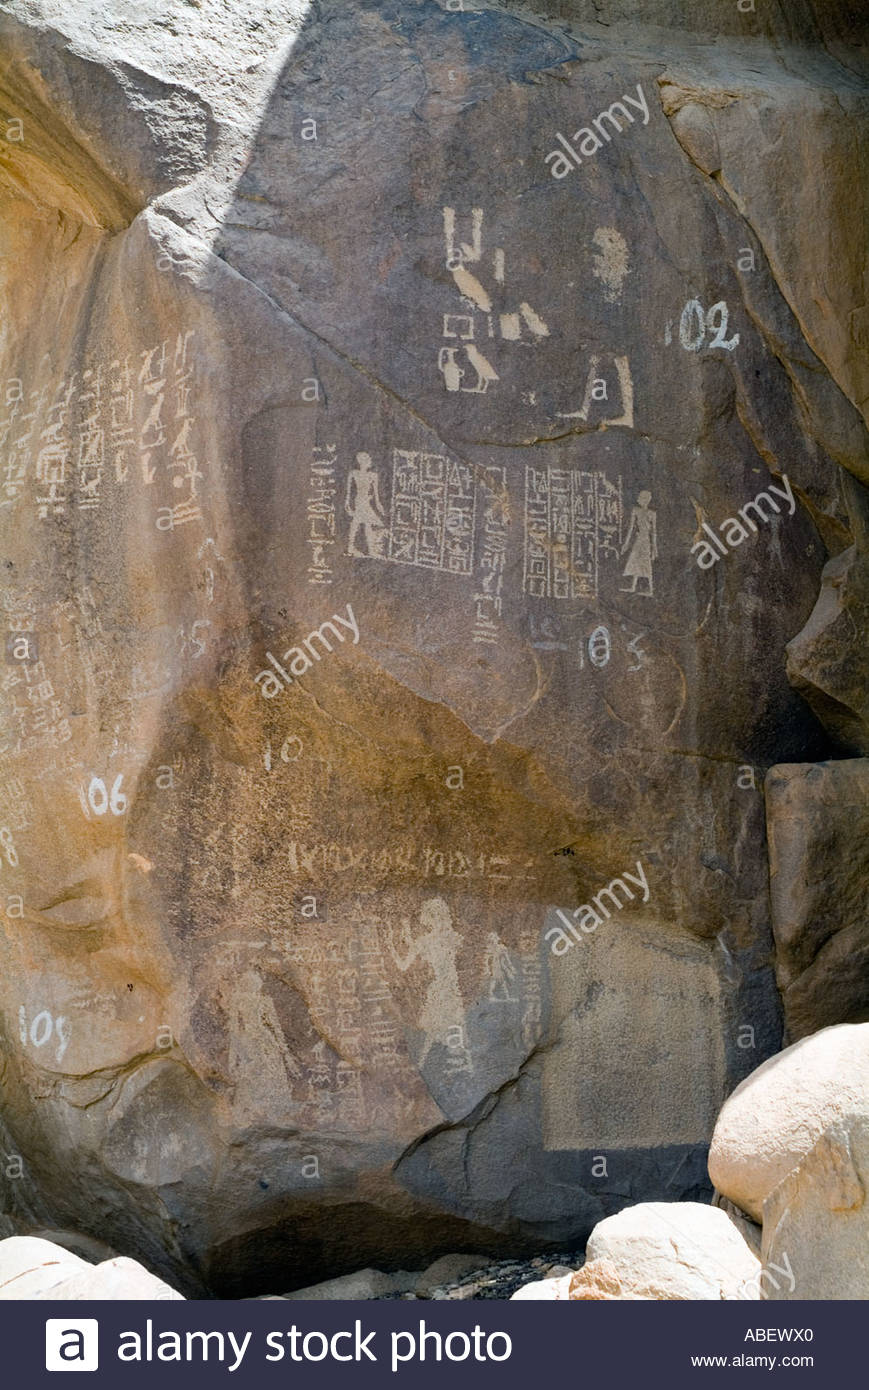 Numbered Inscriptions By Ancient Egyptian Officials Amongst Boulders